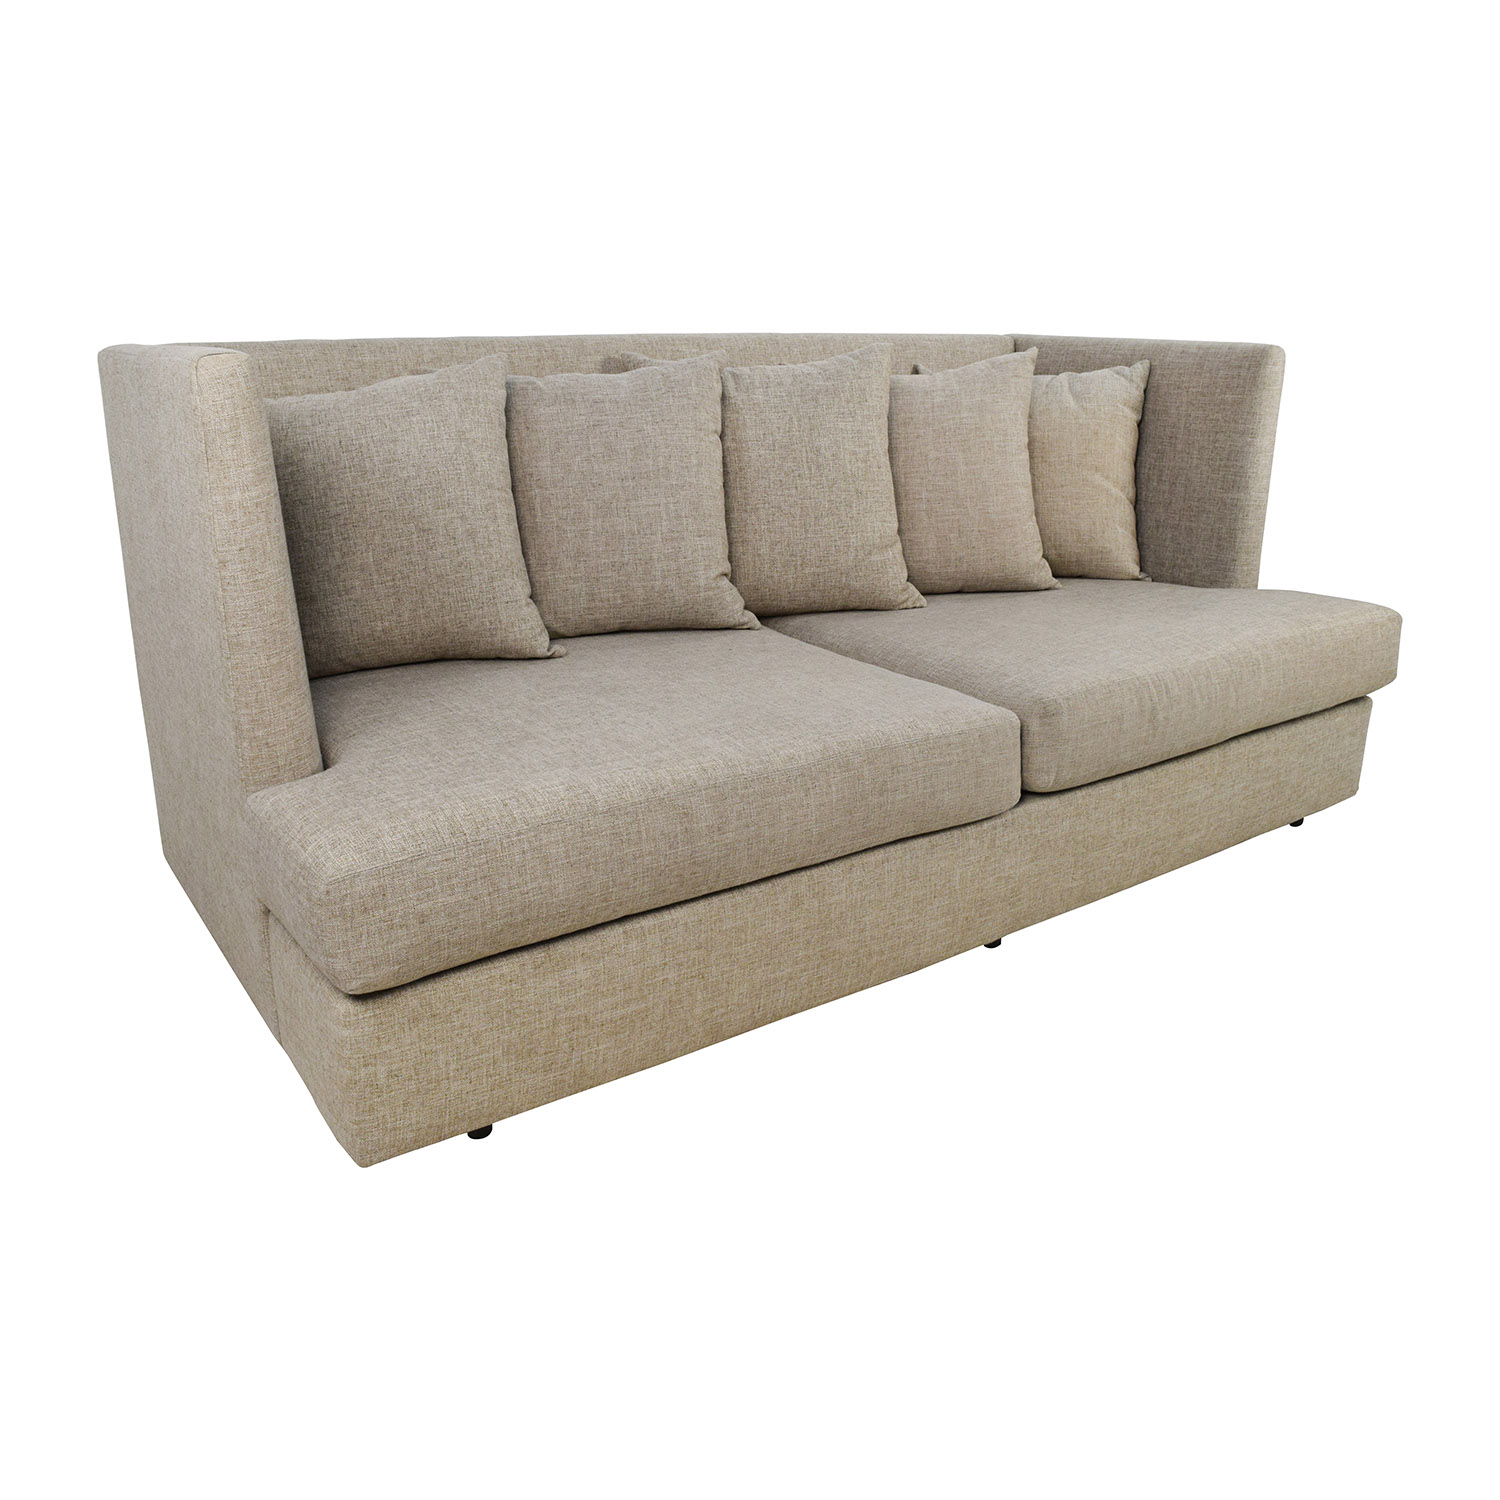 crate and barrel shelter sofa dimensions standard 4 seater 34 off beige